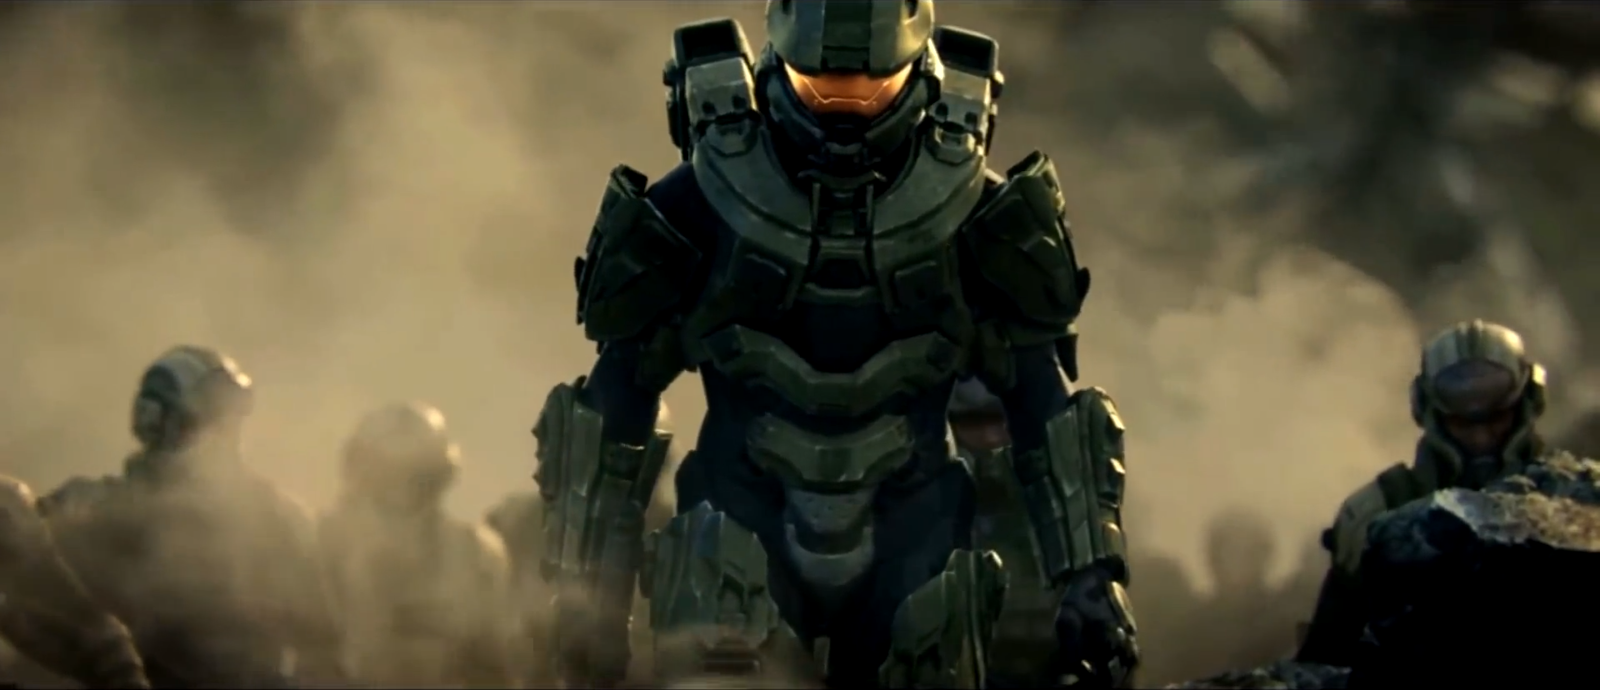 Halo 4 Level By Level Analysis Prologue Haruspis